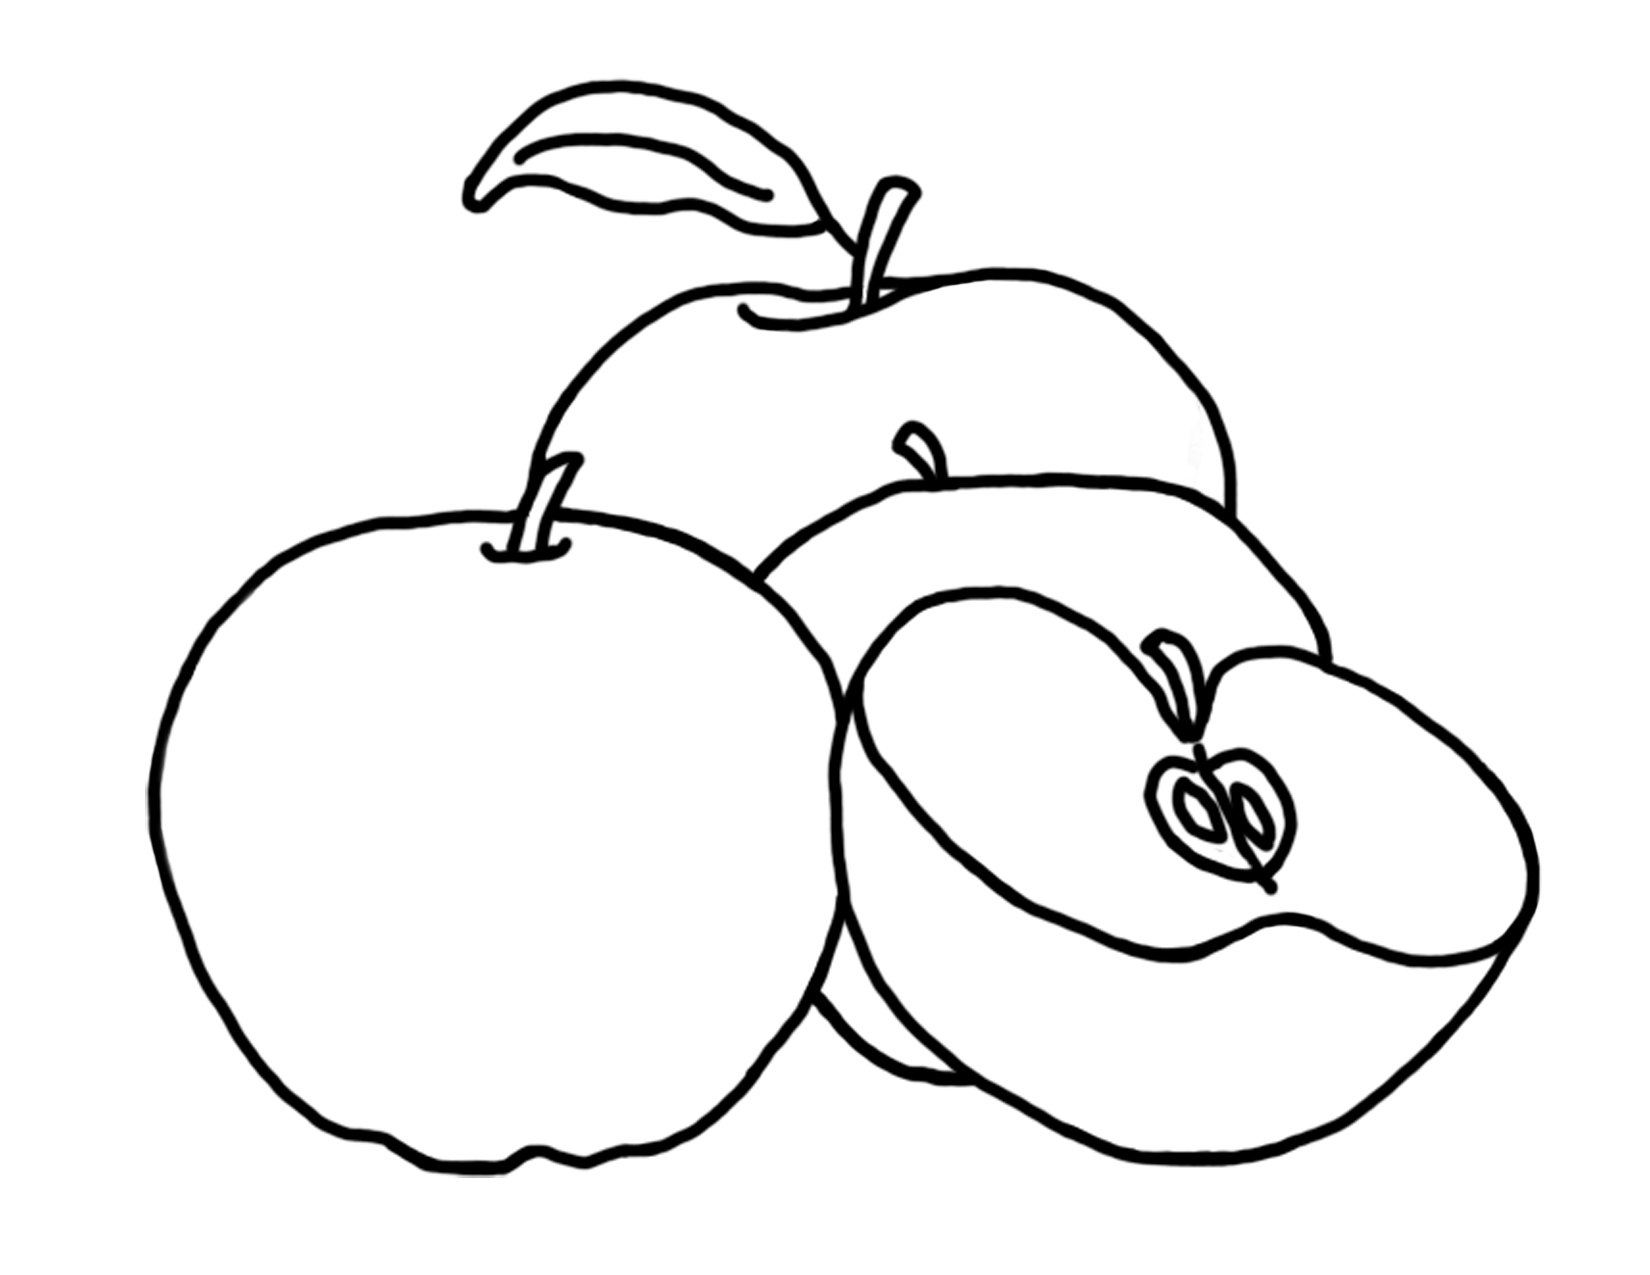 a apple coloring sheet apple logo coloring pages at getcoloringscom free sheet a coloring apple